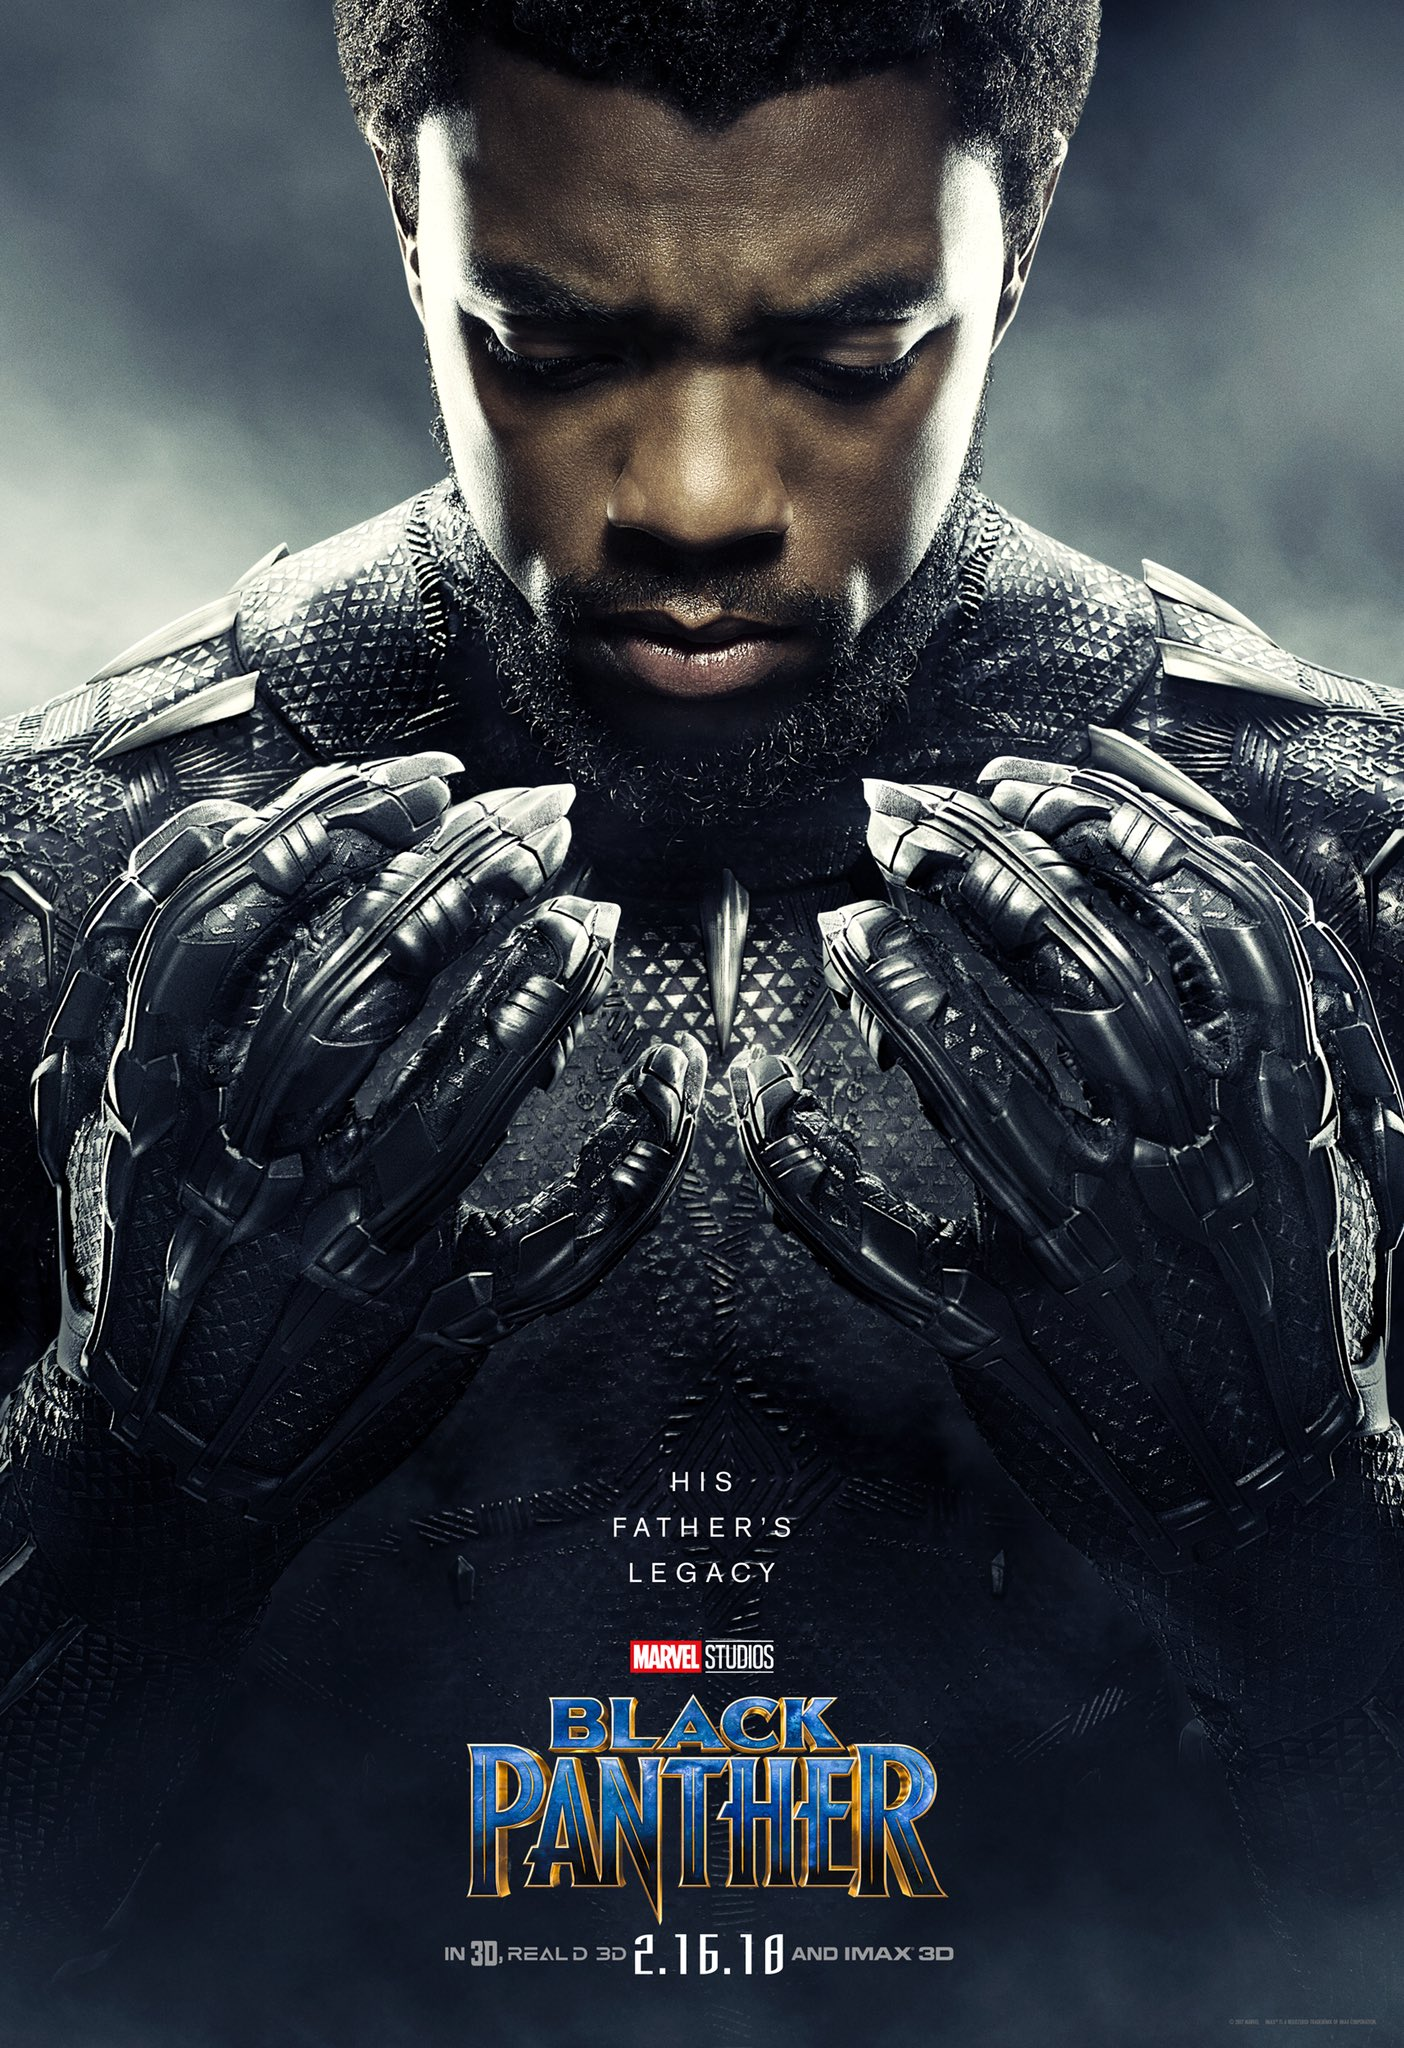 Image result for black panther movie posters hd